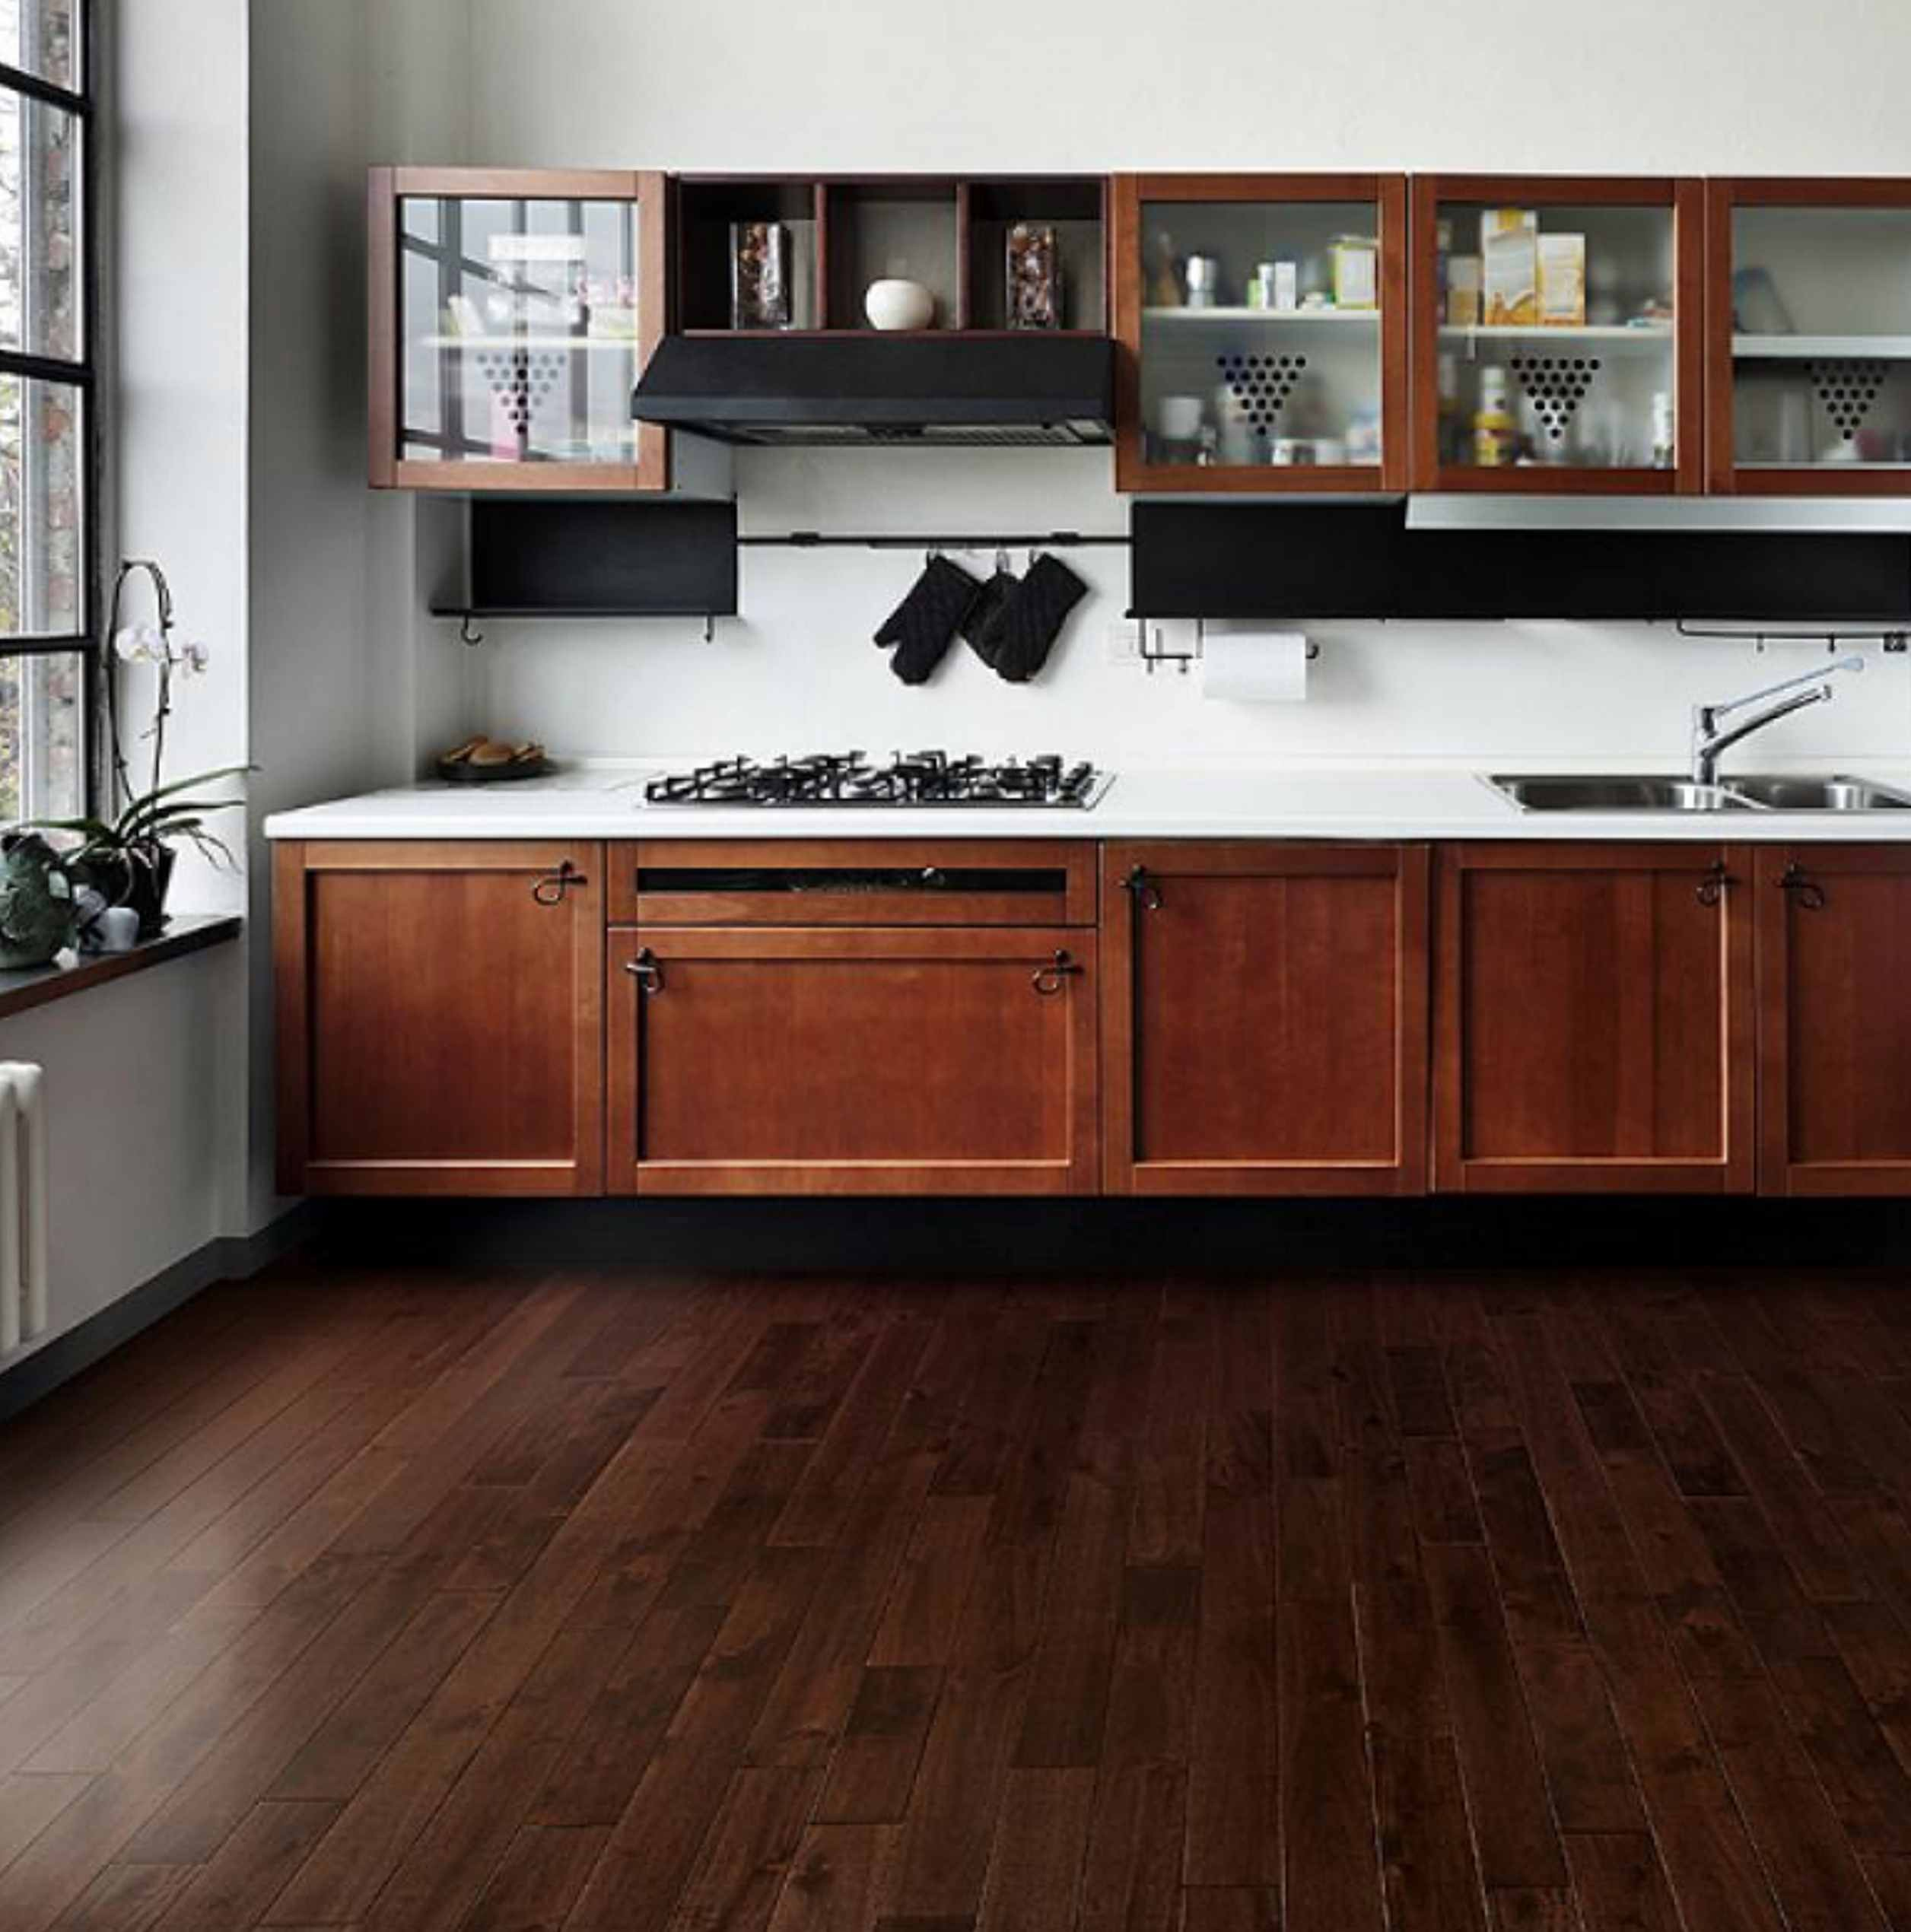 Most Popular Kitchen Flooring: The Best Flooring For A Family Home